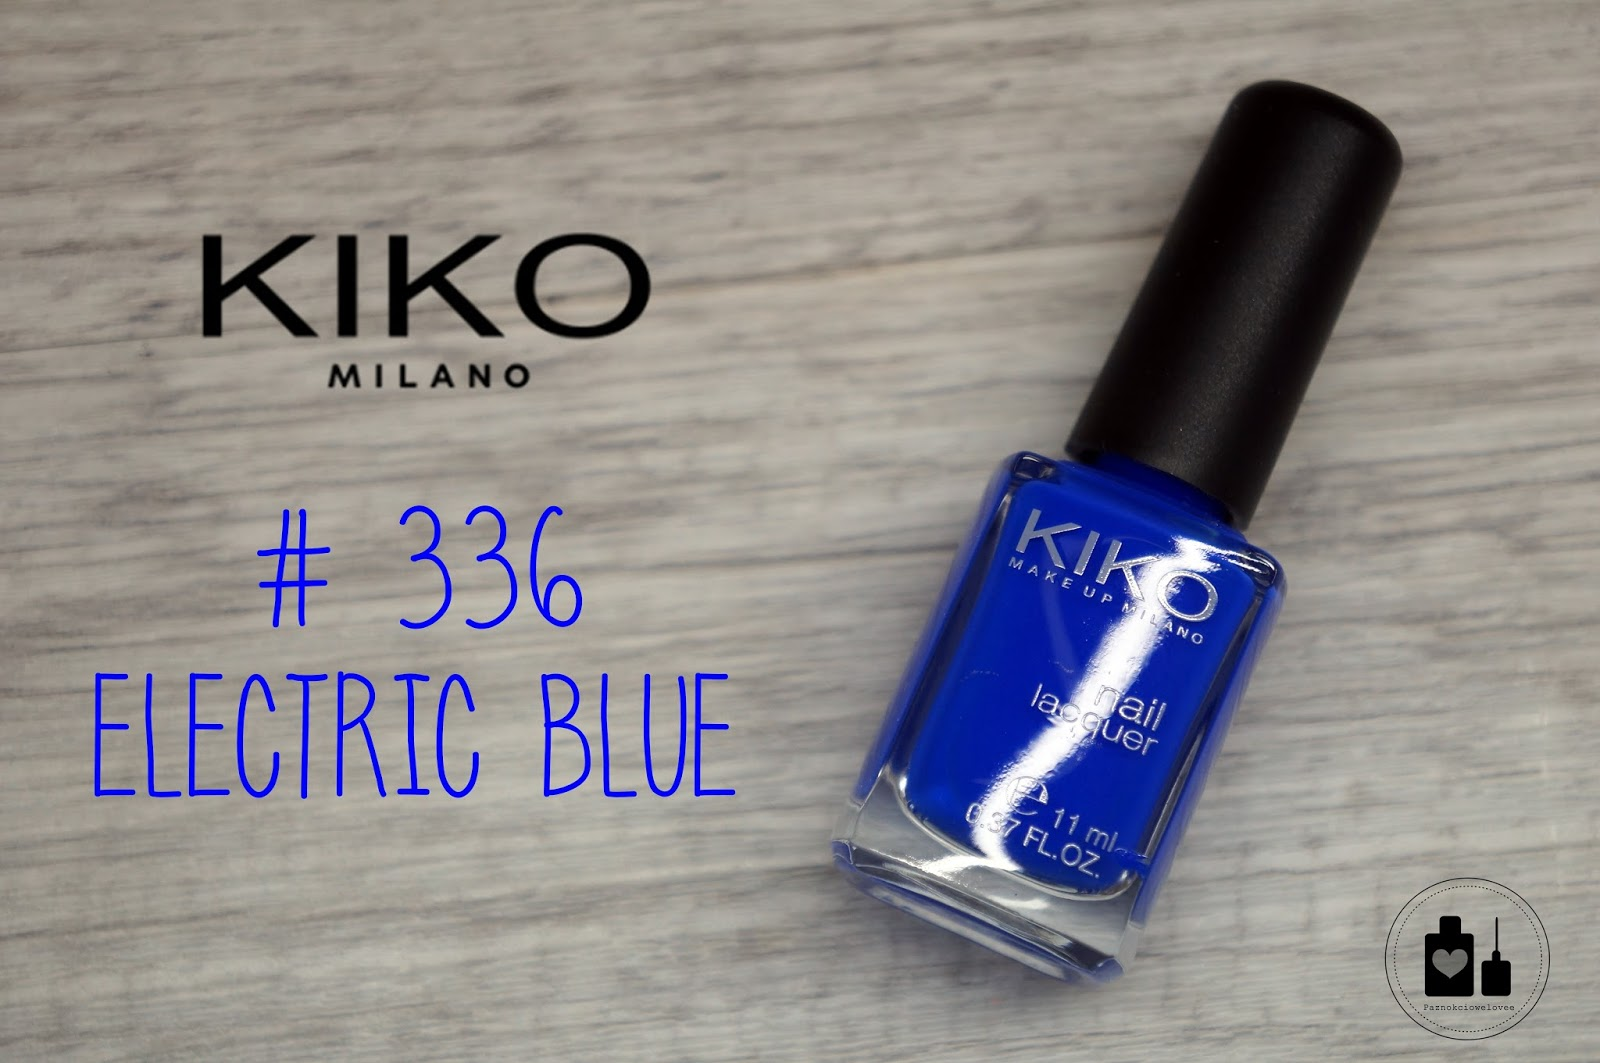 Kiko #336 Electric Blue